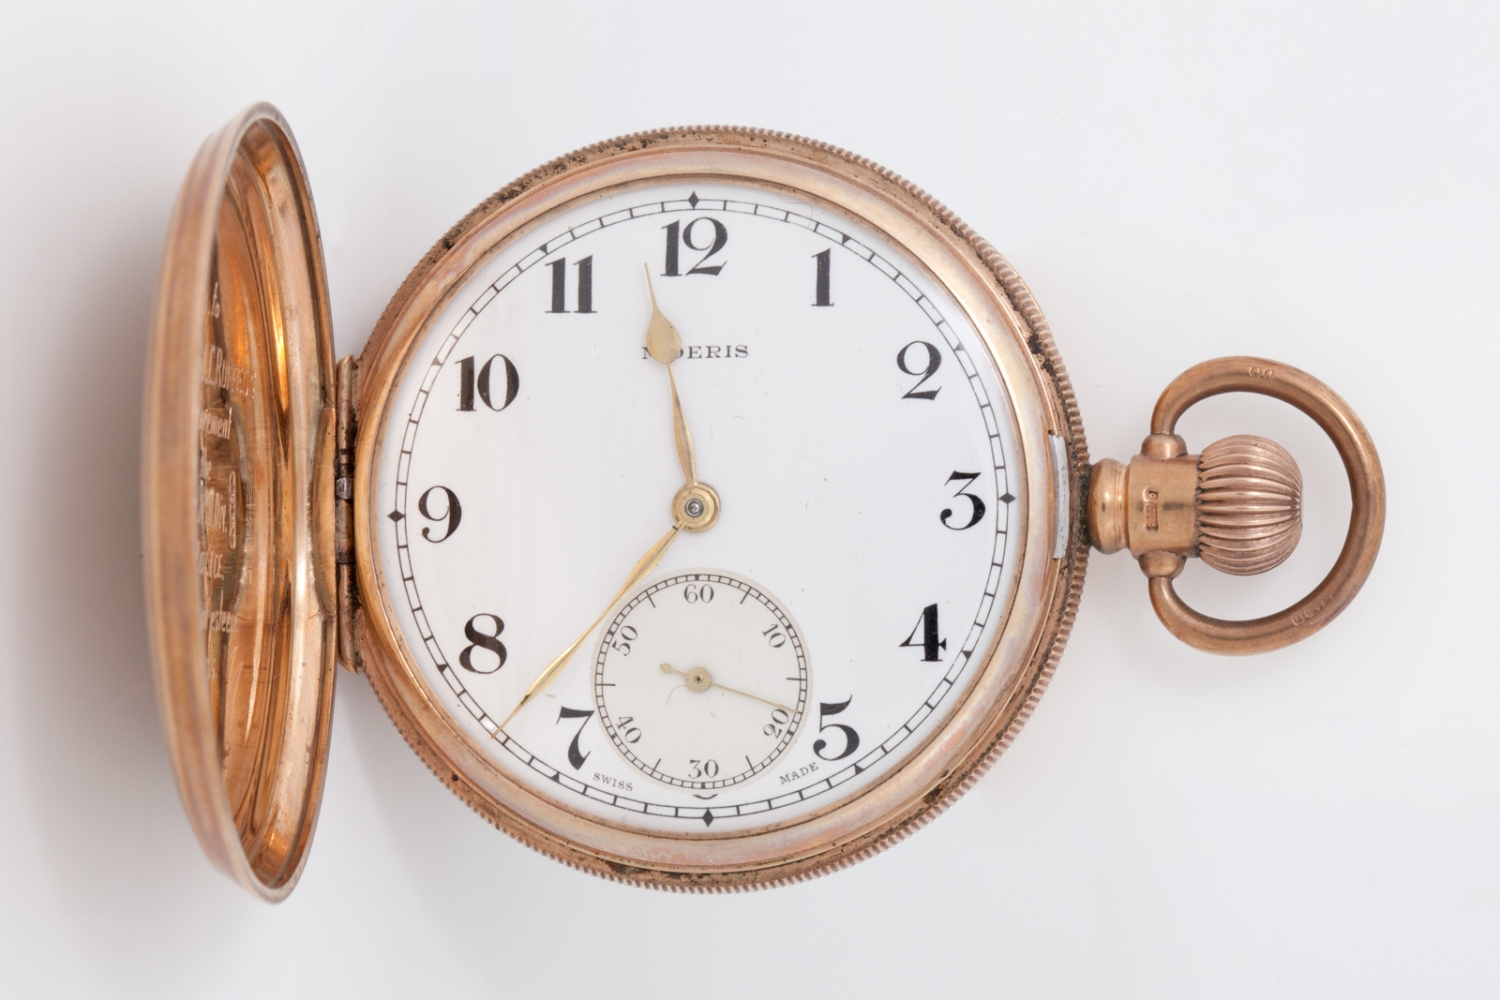 Gold pocket watch presented to Inspector Arthur James Colyer Ruffels, 1935